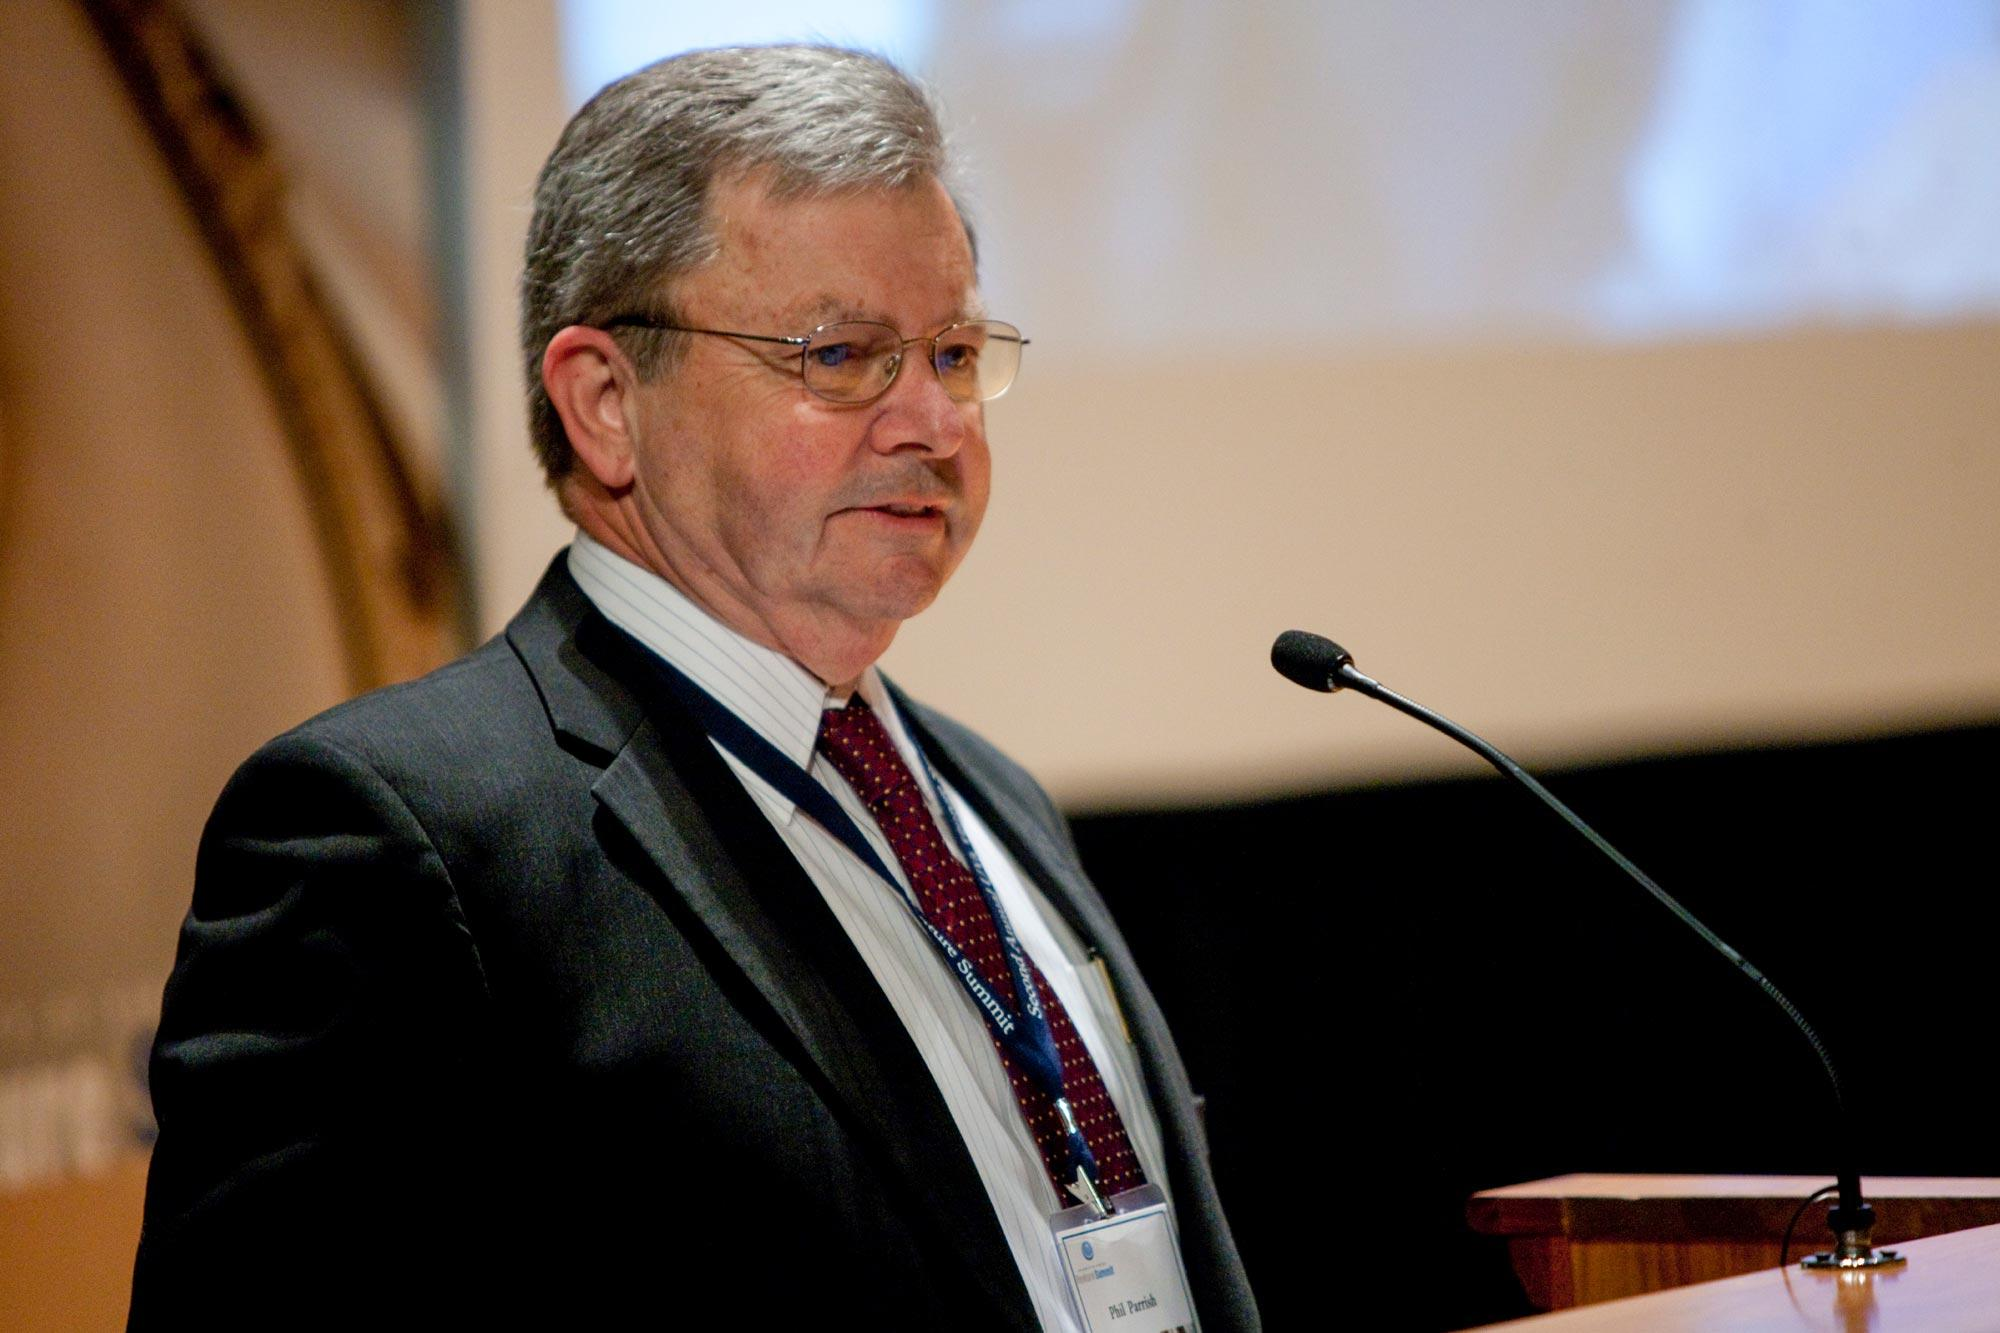 Materials scientist Phillip A. Parrish served as UVA's interim vice president for research.